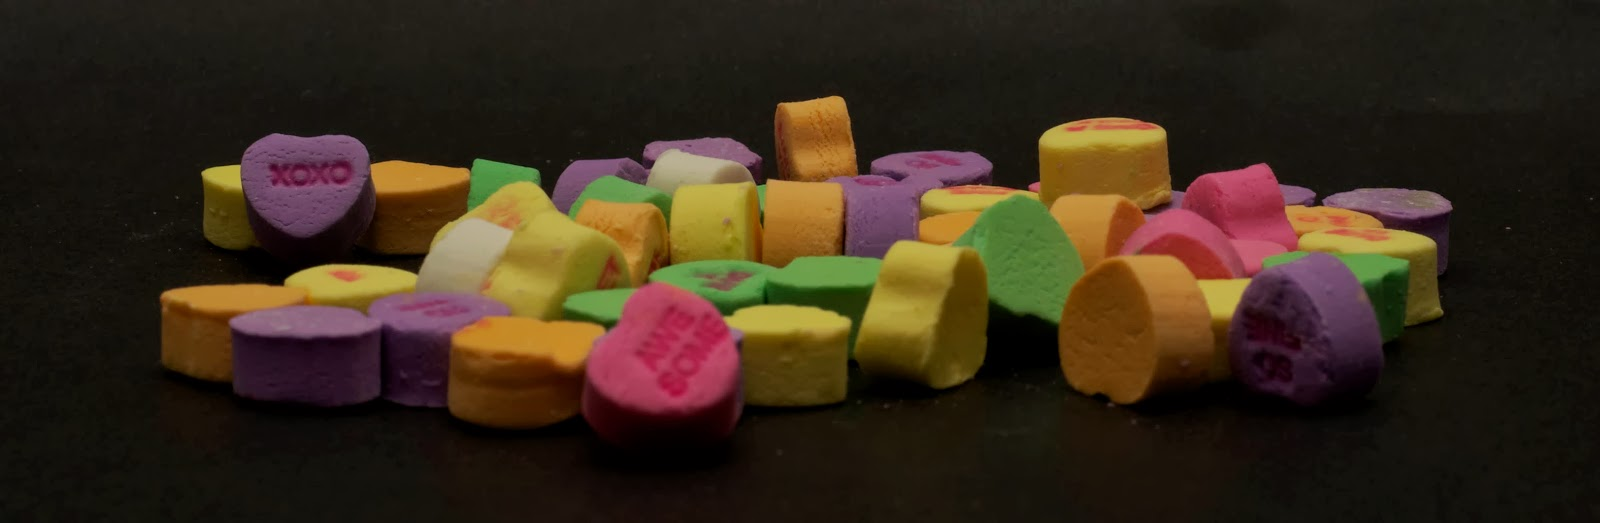 heart shaped candies with messages on black background